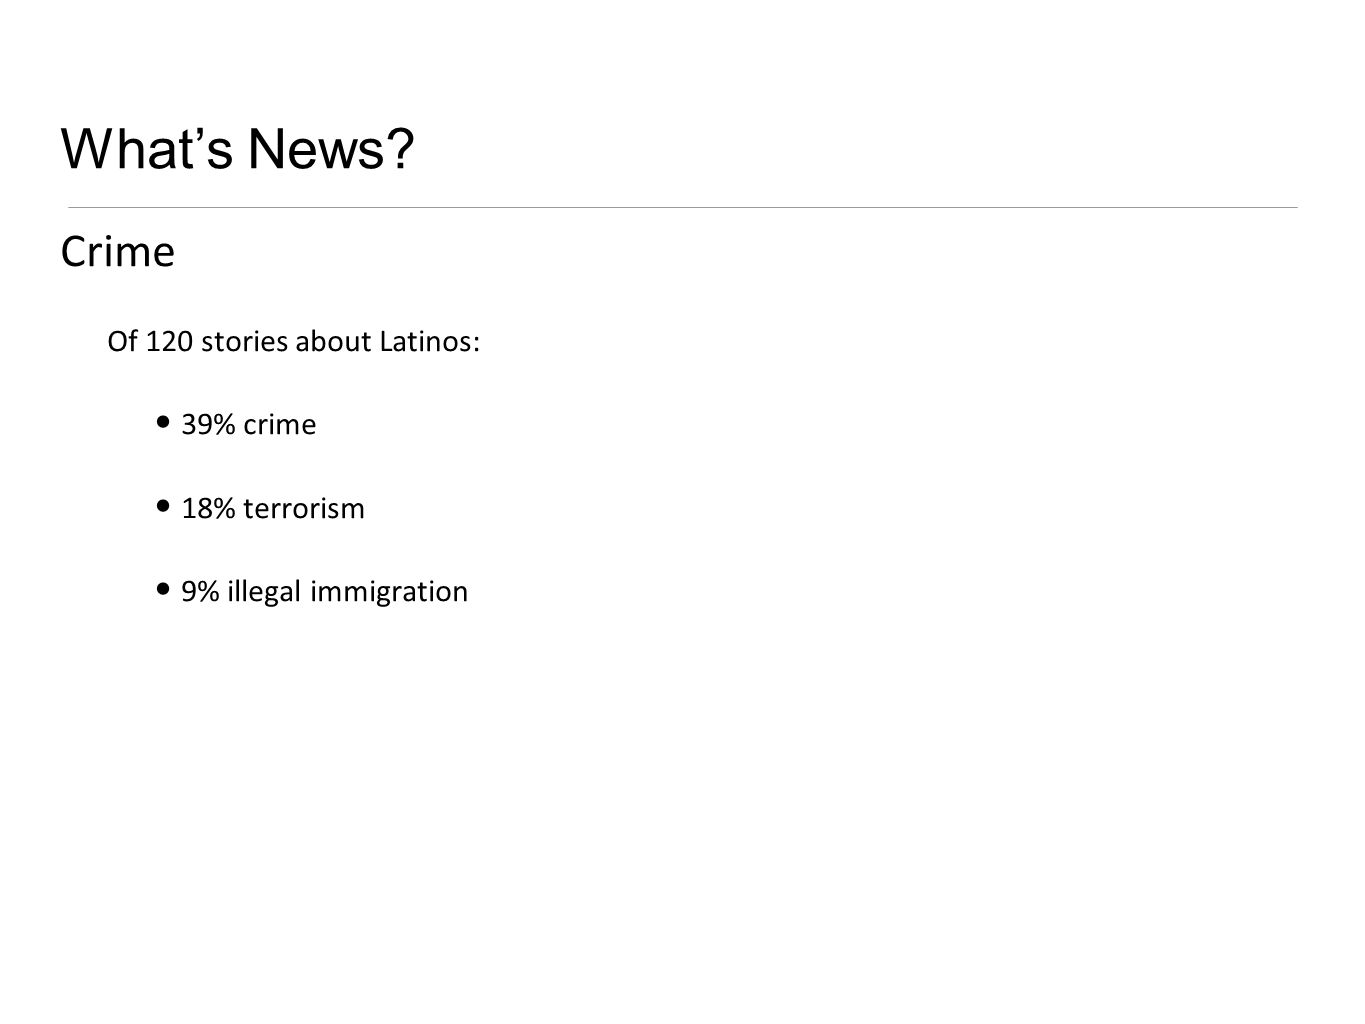 Whats News? Crime Of 120 stories about Latinos: 39% crime 18% terrorism 9% illegal immigration